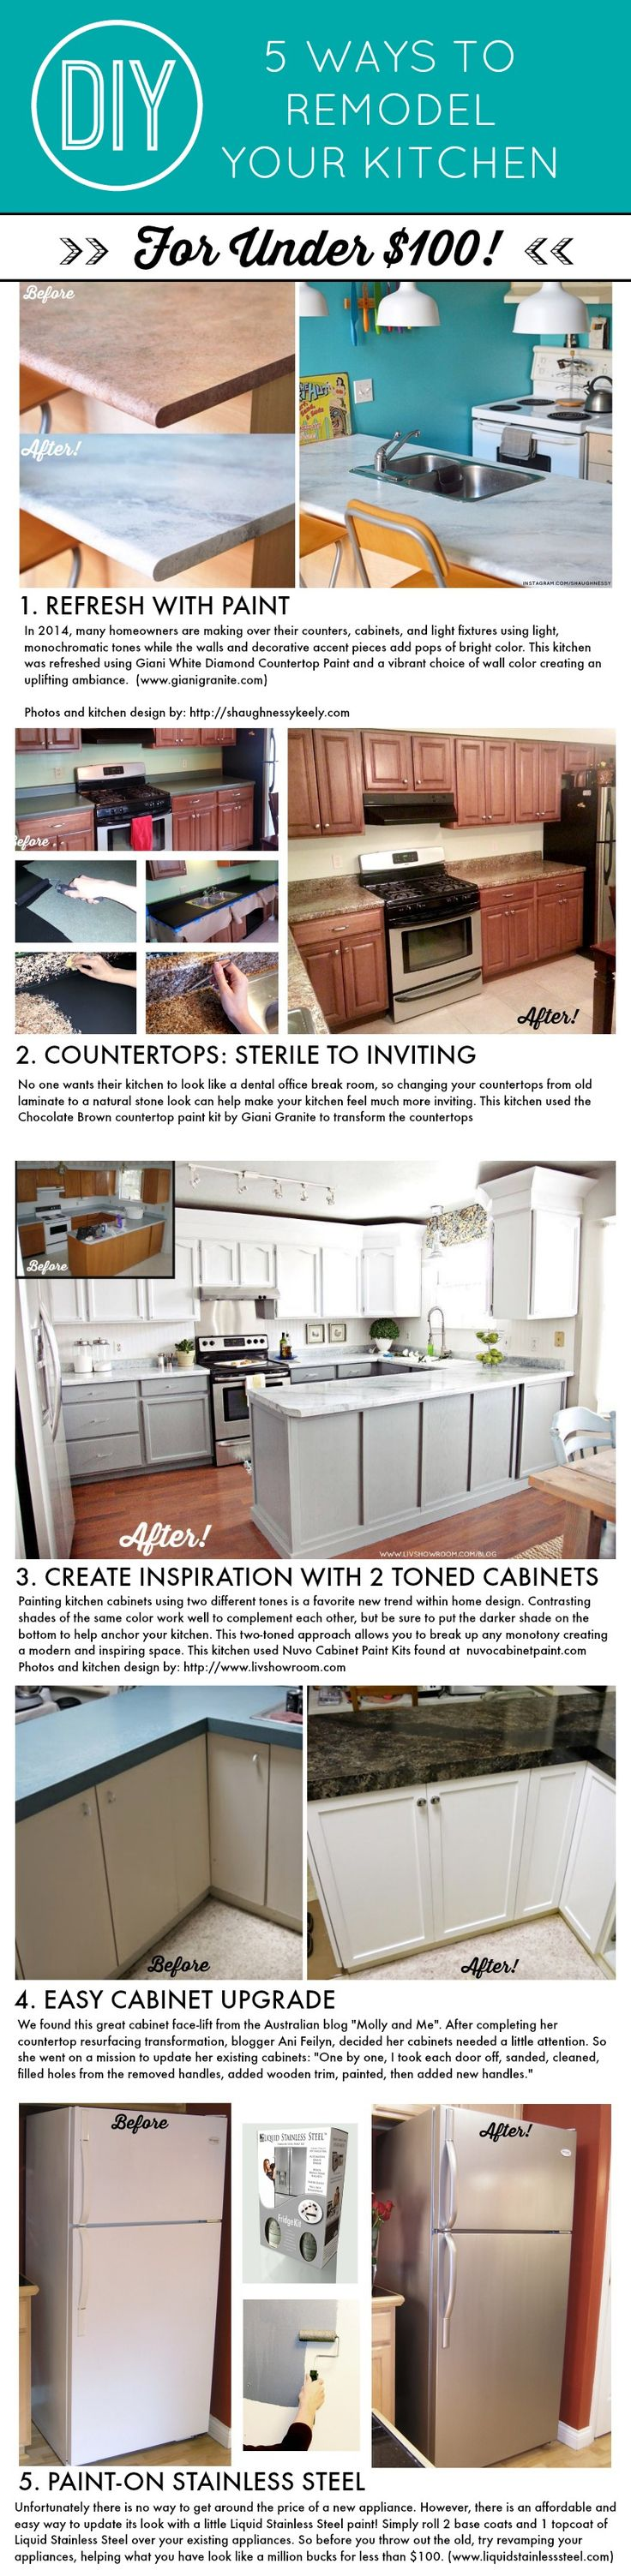 5 WAYS TO REMODEL YOUR KITCHEN FOR UNDER $100! Kitchen makeover on a budget! #DIY #Home #Paint #Kitchen